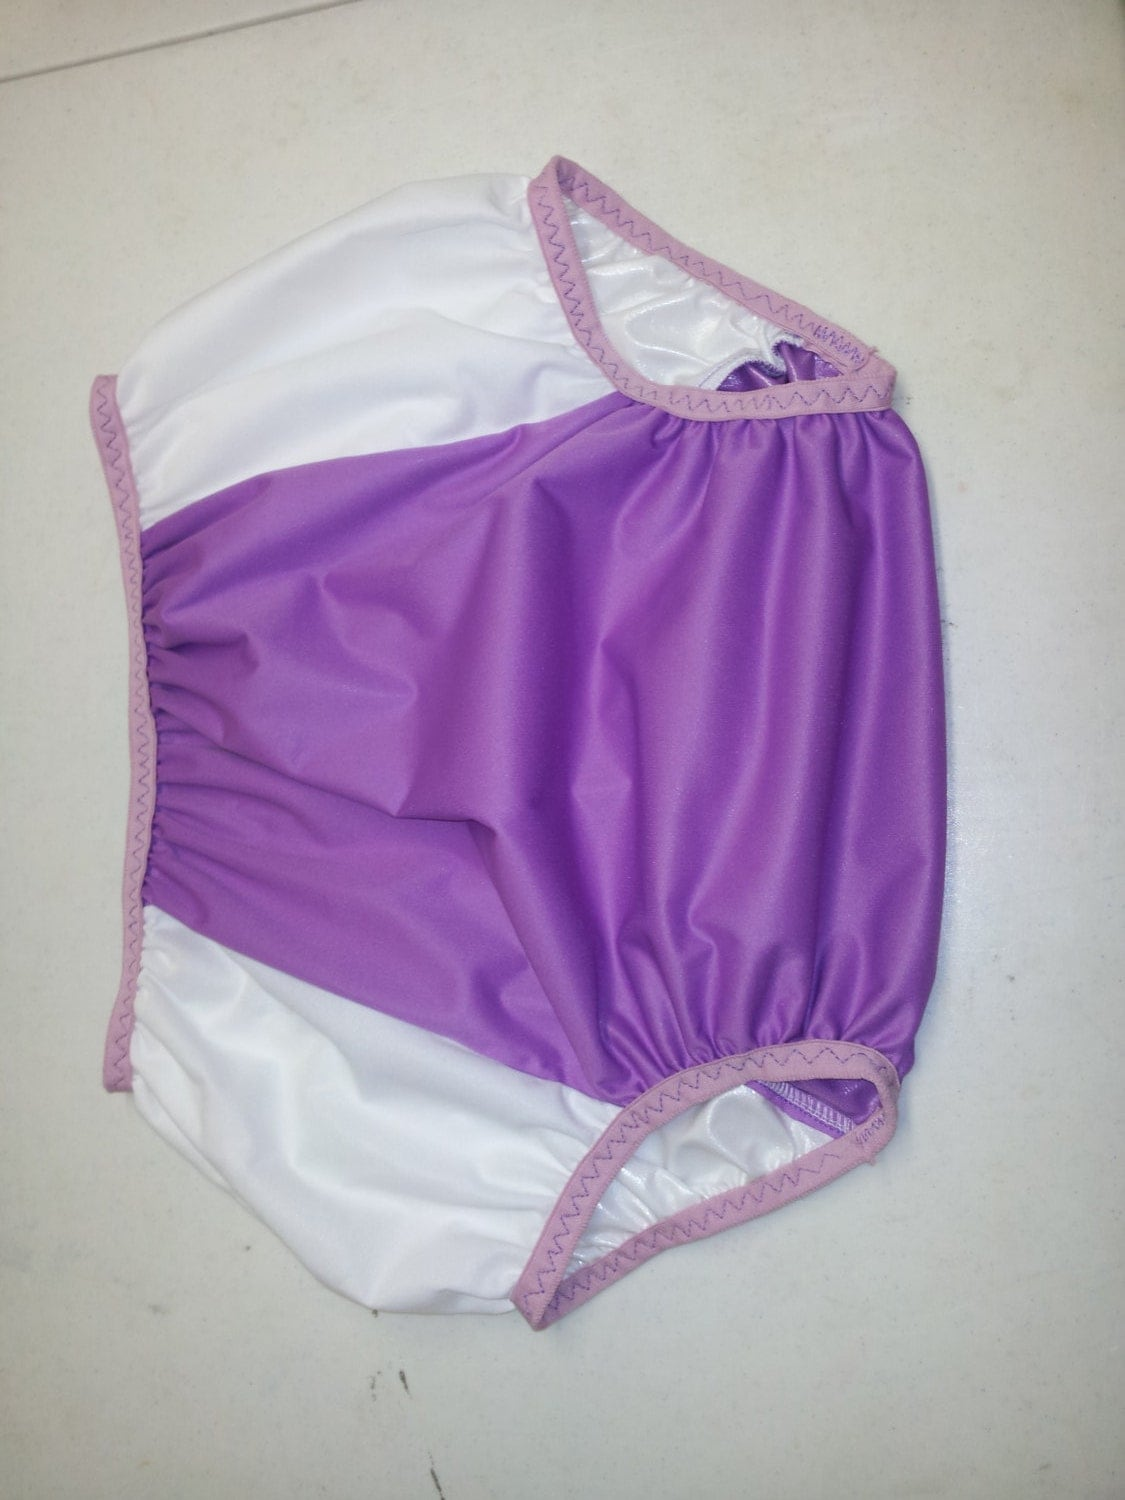 Adult Diaper Cover Lavender And White Size 30 To 40 Inches